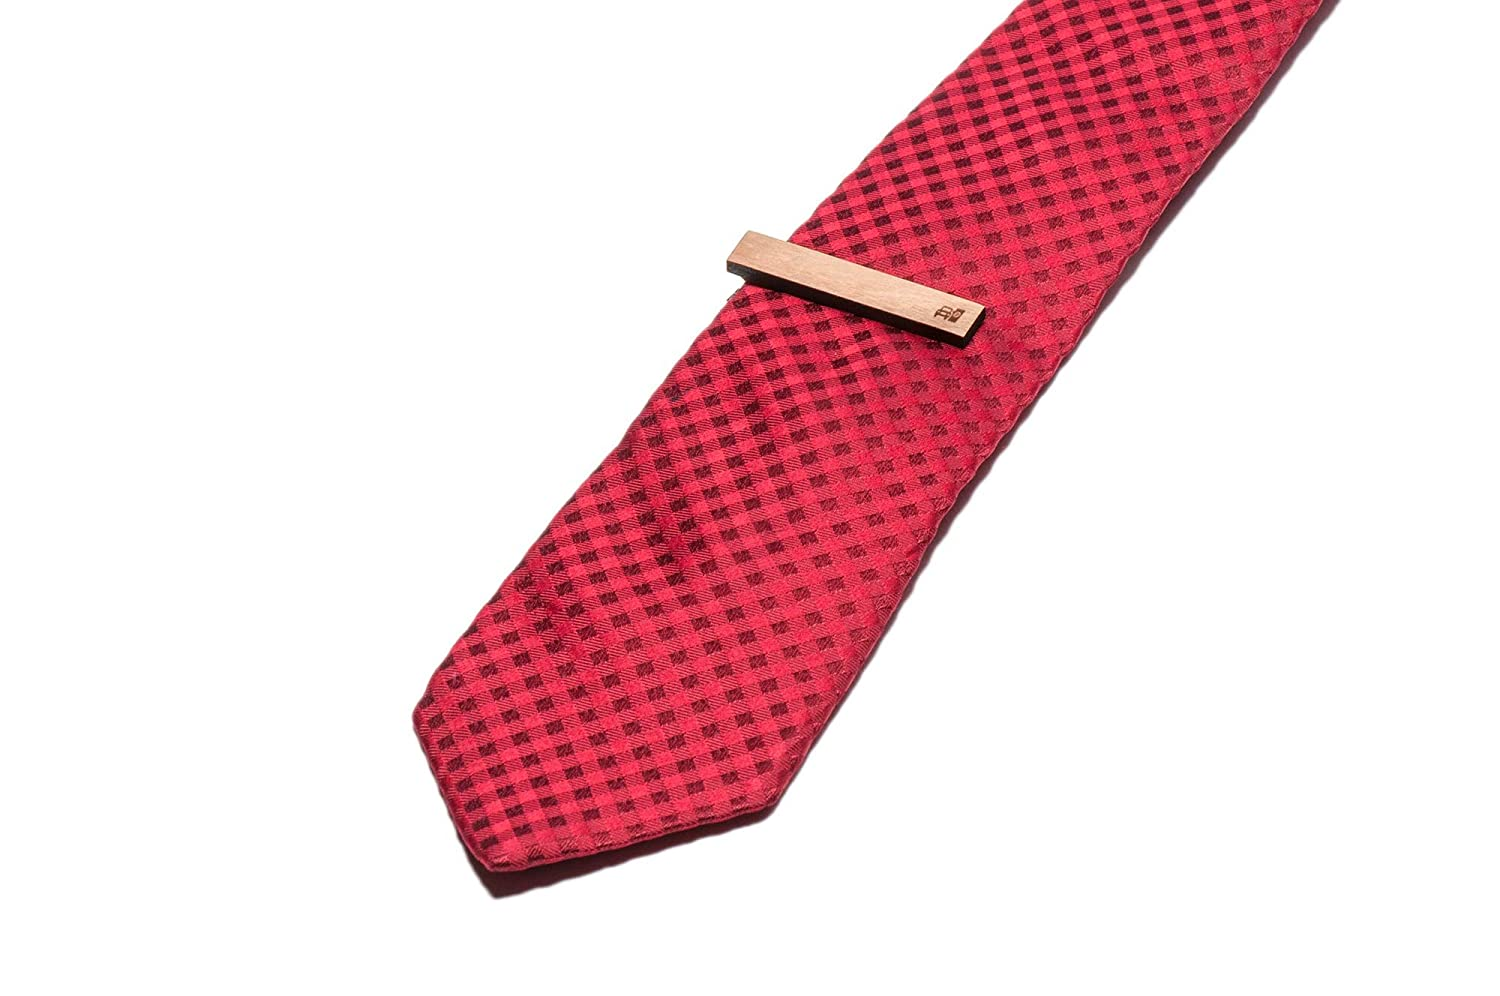 Wooden Accessories Company Wooden Tie Clips with Laser Engraved Parking Booth Design Cherry Wood Tie Bar Engraved in The USA